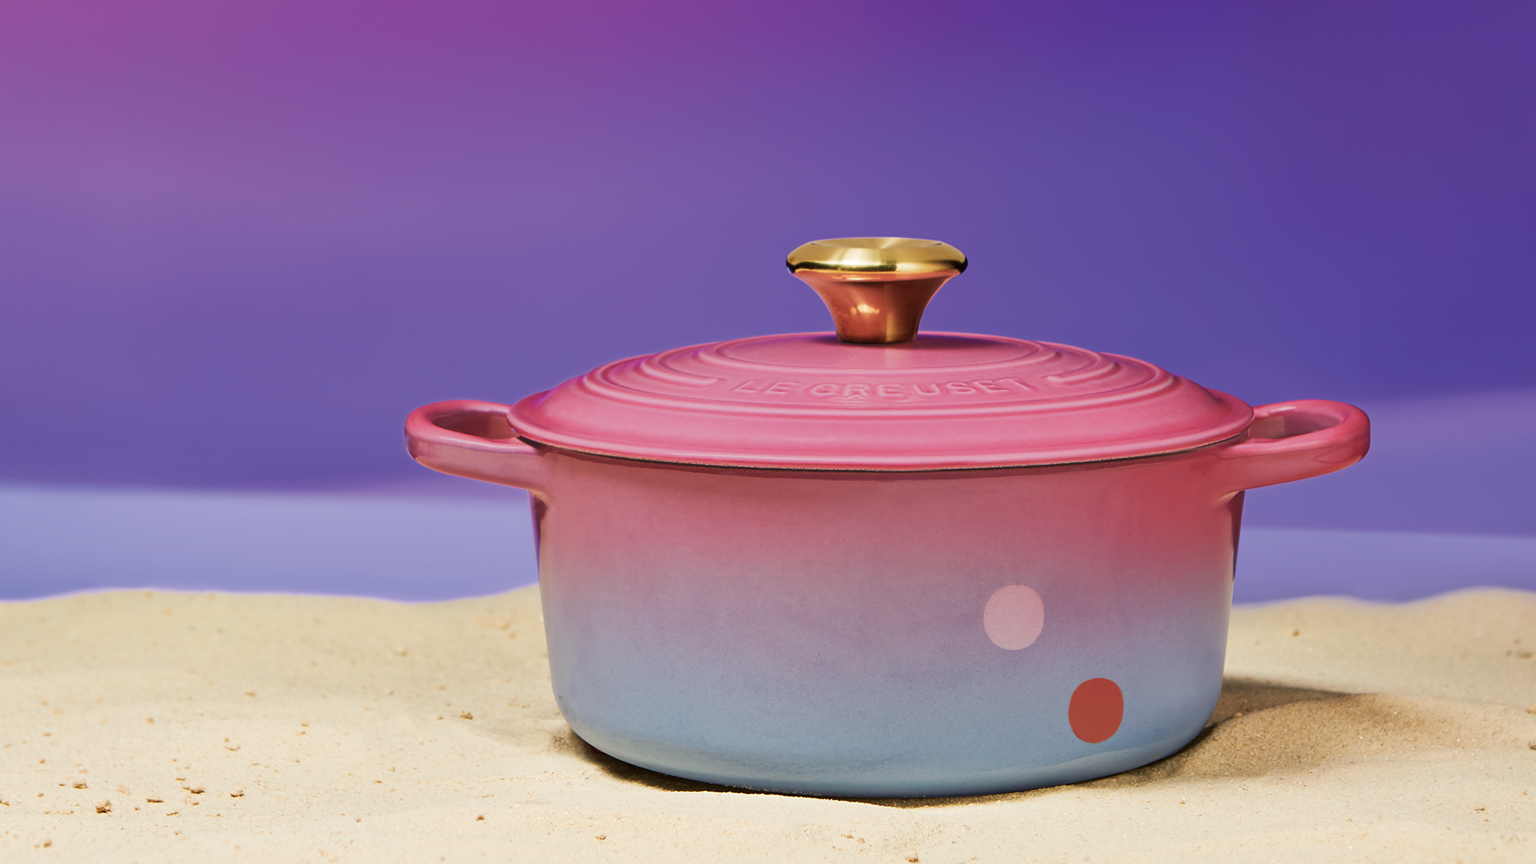 A Dutch oven from the Star Wars Le Creuset line.